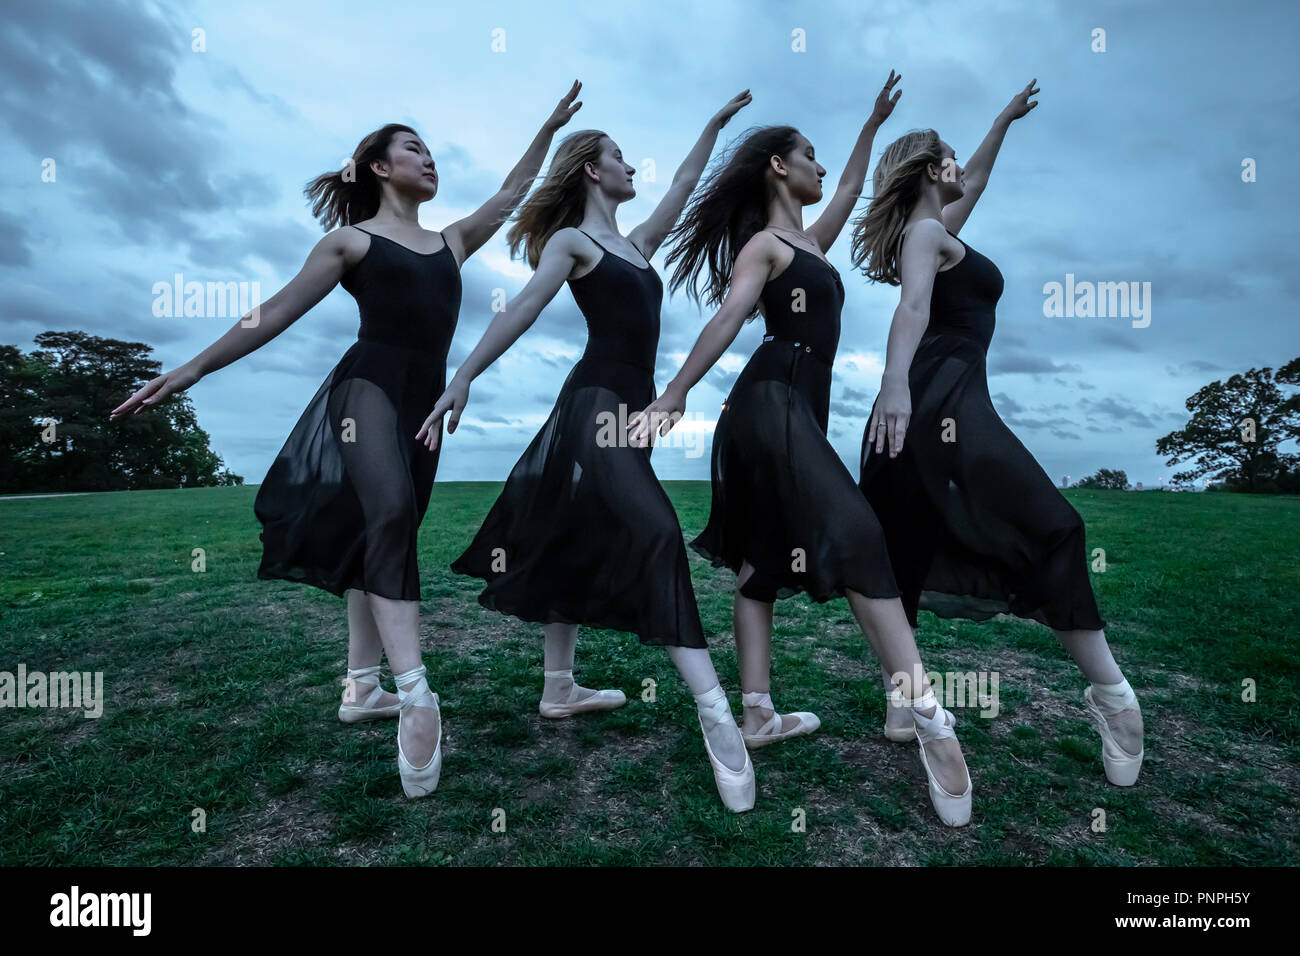 London, UK. 22nd September, 2018. Dancers from Semaphore Ballet Company perform on Primrose Hill on the last day of summer before the autumnal equinox. (L-R) Natsuki Uemura, Aoife Doherty, Rebecca Olarescu and Beth Wareing. Credit: Guy Corbishley/Alamy Live News Stock Photo